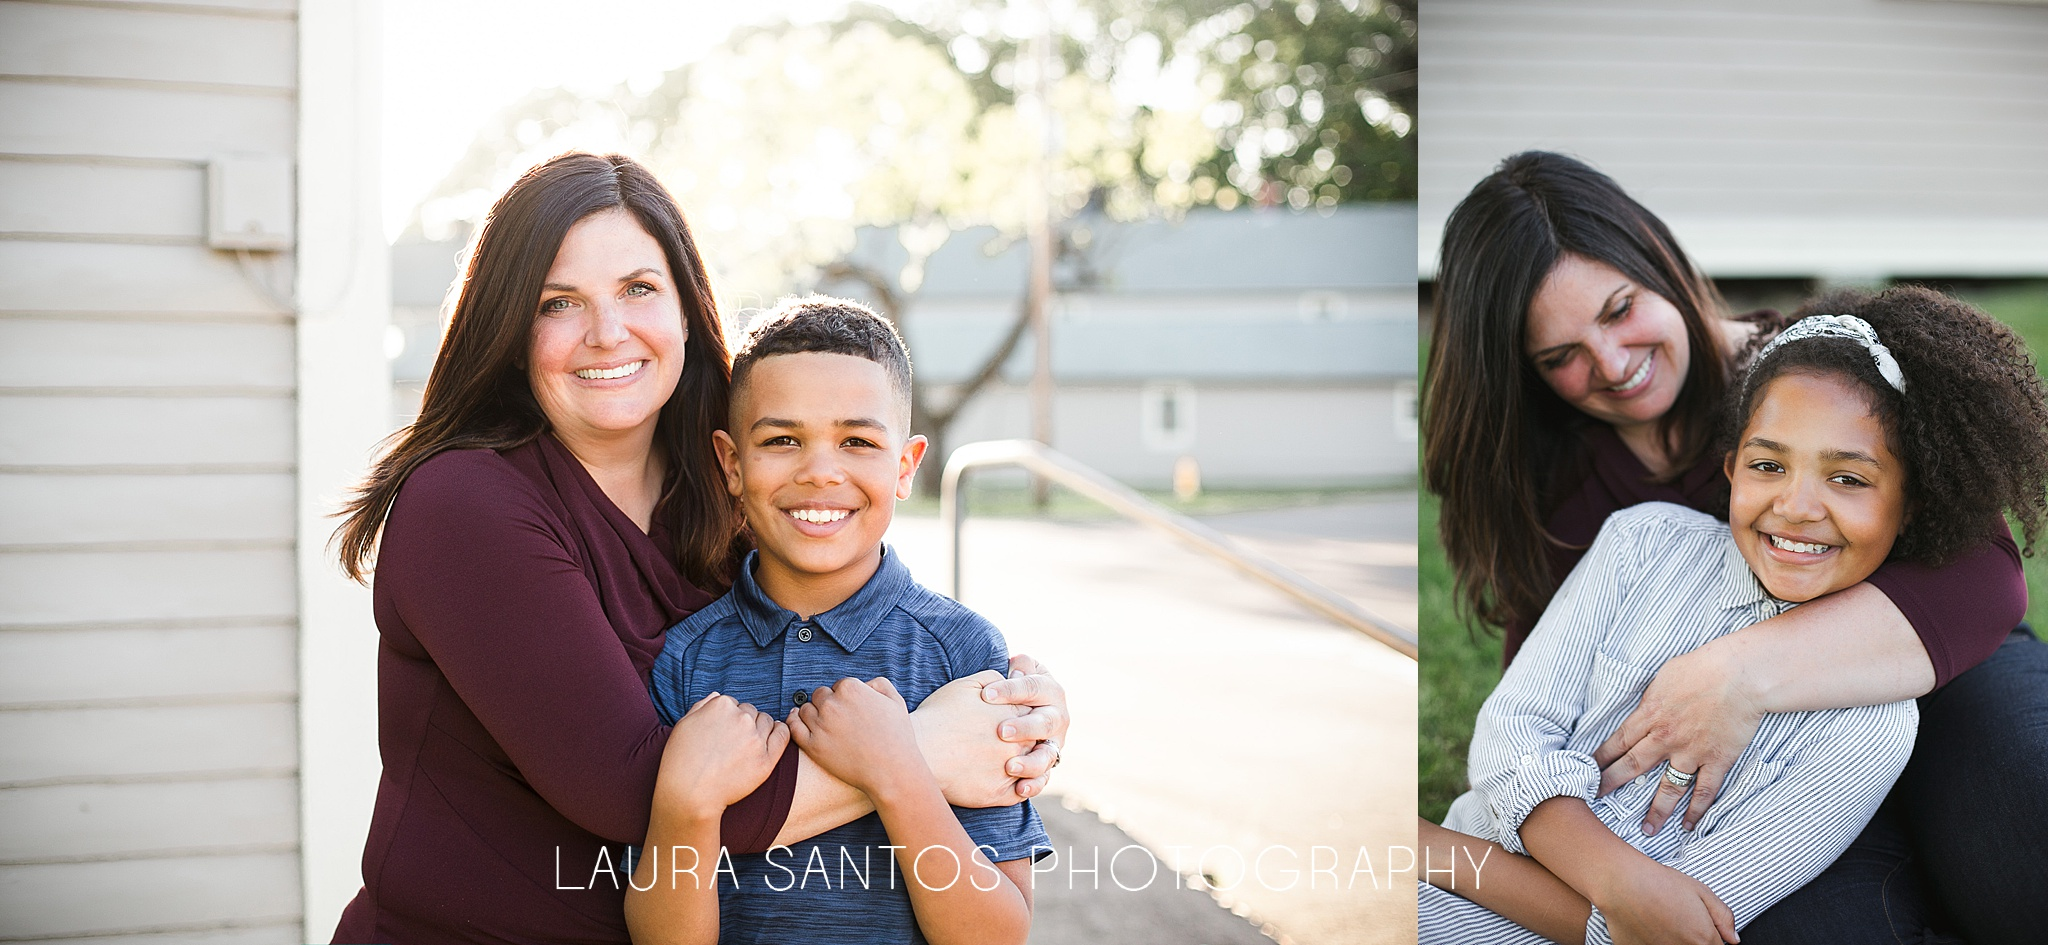 Laura Santos Photography Portland Oregon Family Photographer_0950.jpg